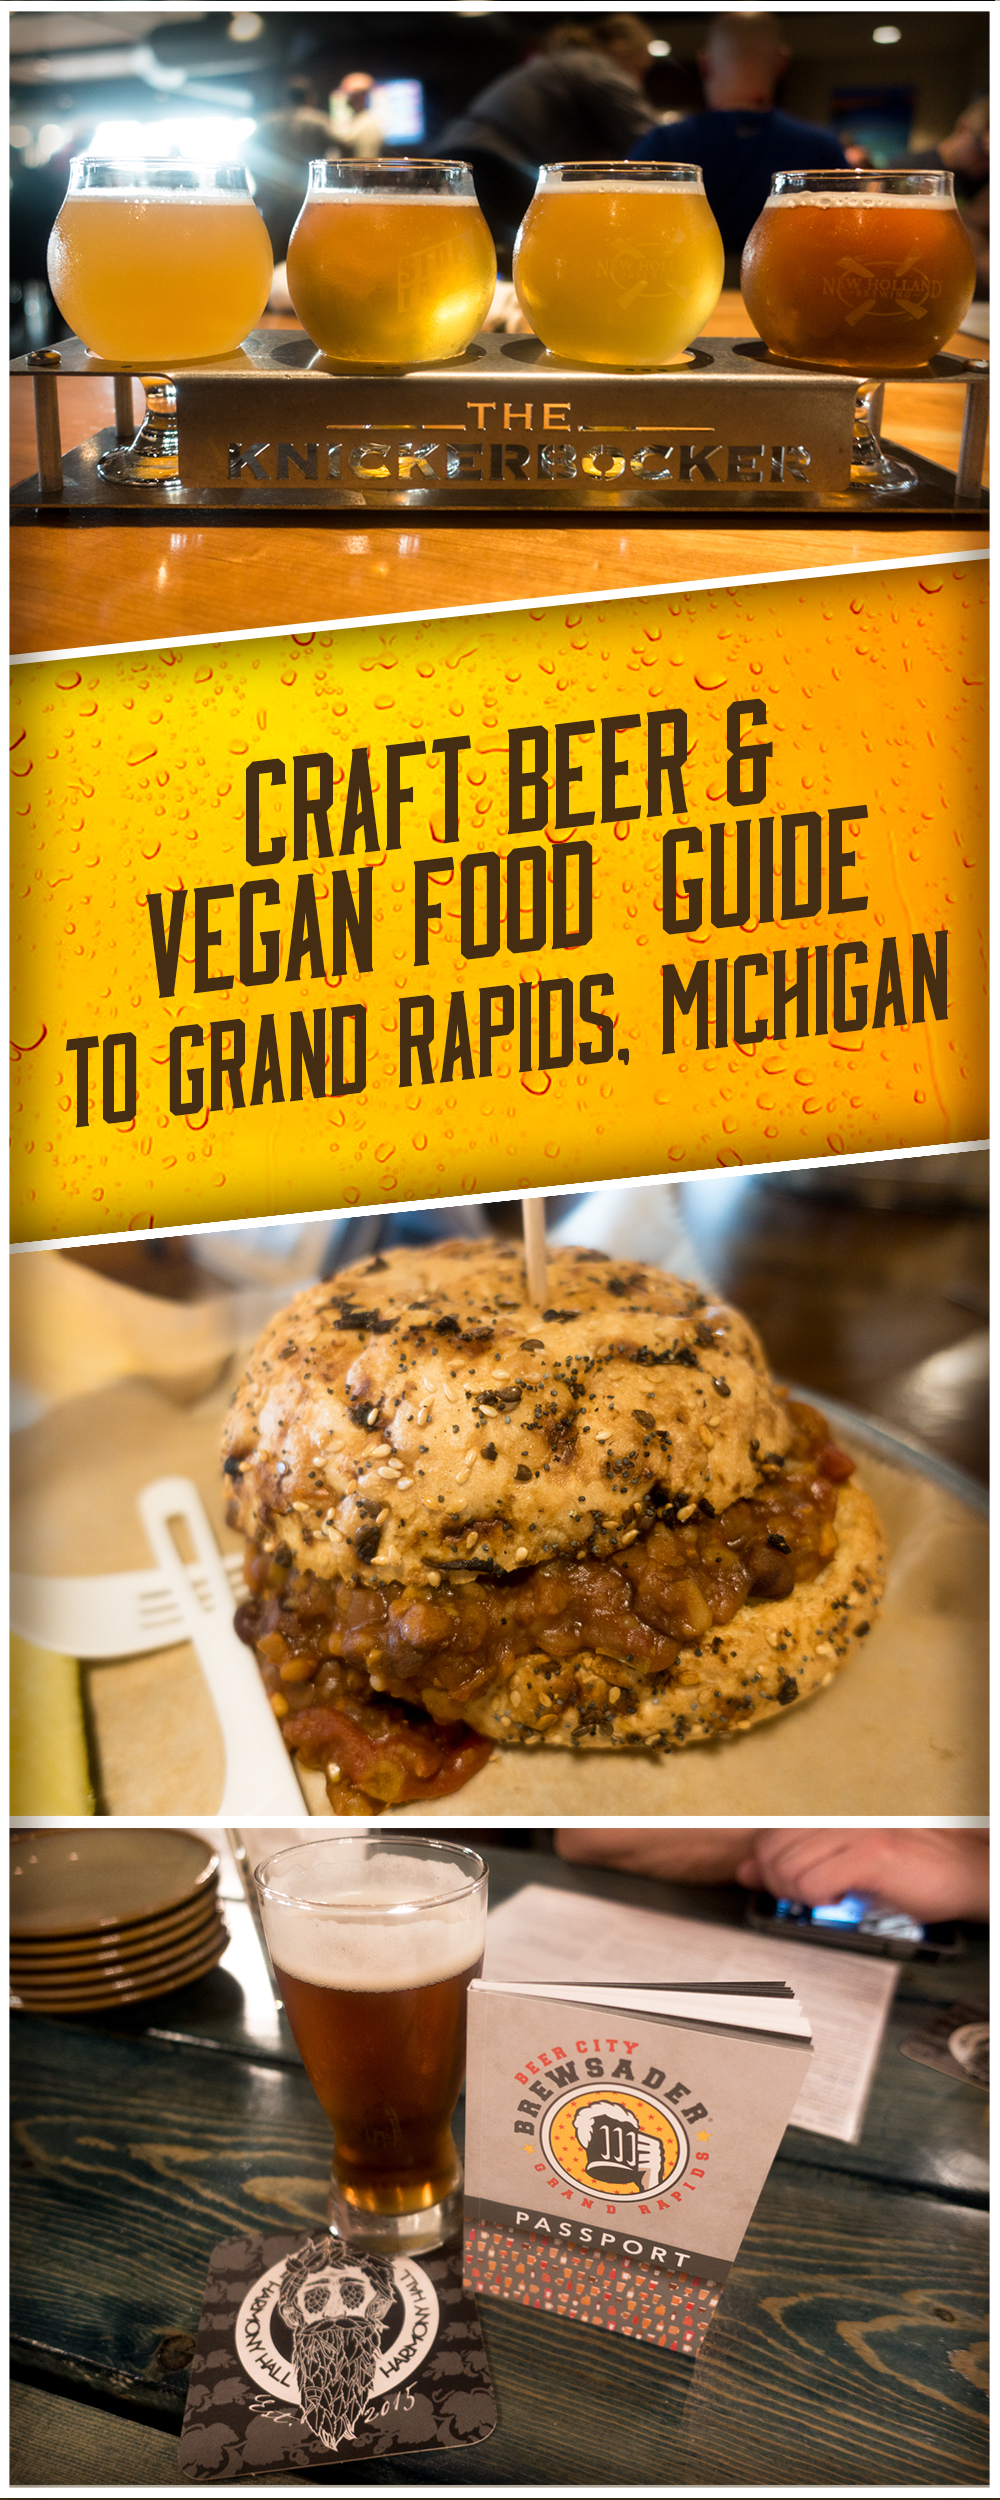 A Craft Beer and Vegan Food Guide to Grand Rapids, Michiganguide.This guide will tell you where to find all the best vegan food and craft beer in Grand Rapids. Grand Rapids is know as Beer City USA and offers a great selection of craft beer. Plan your next beercation here!